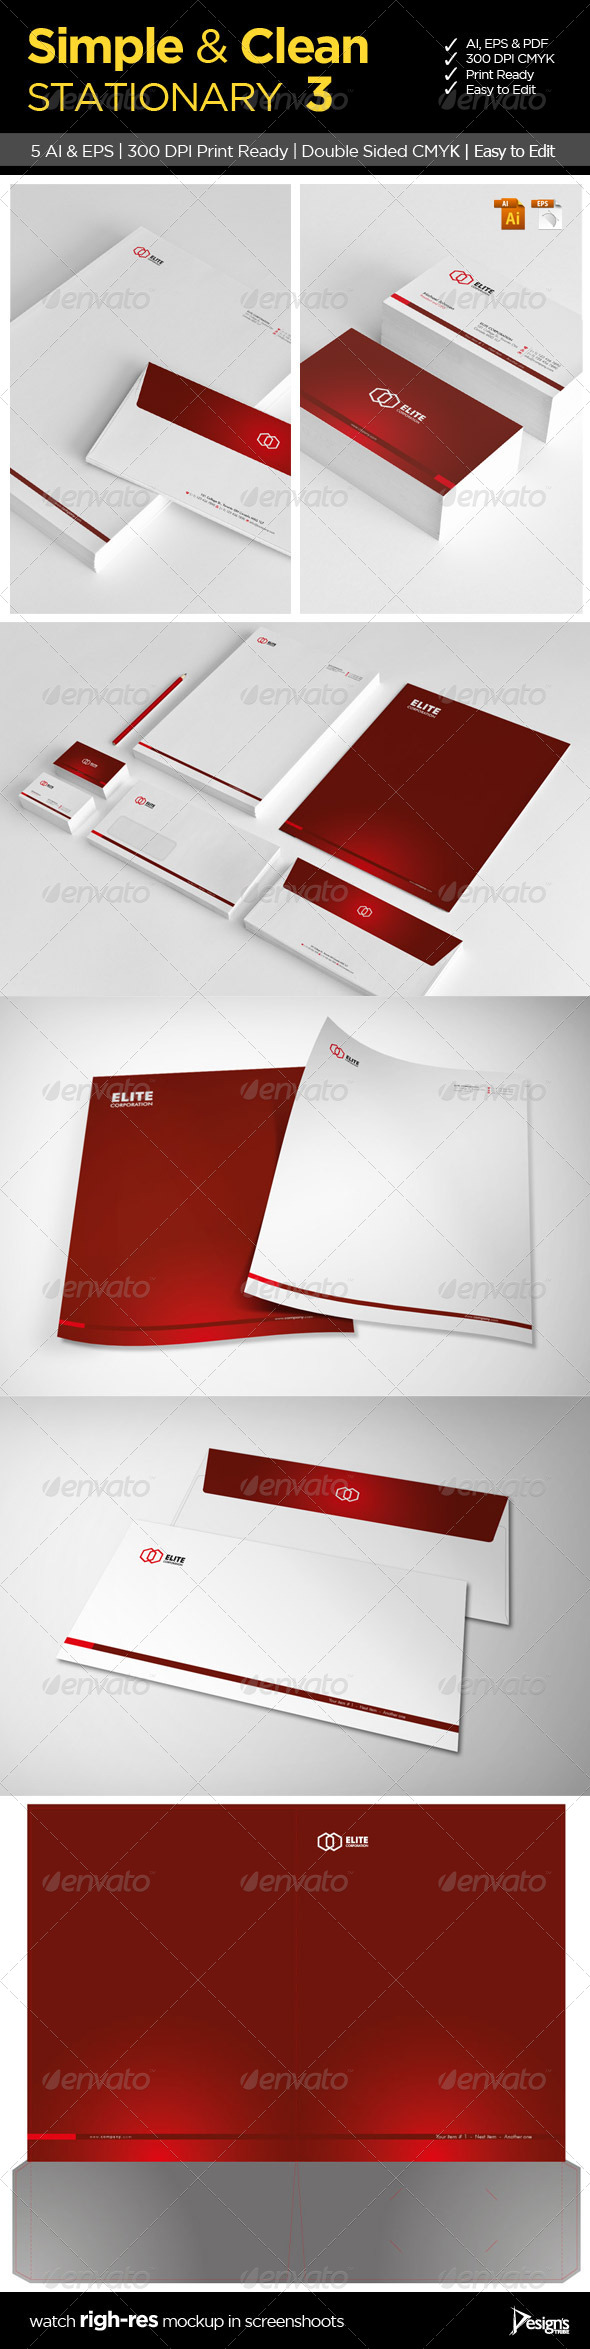 GraphicRiver Simple and Clean Stationary 3 5811089